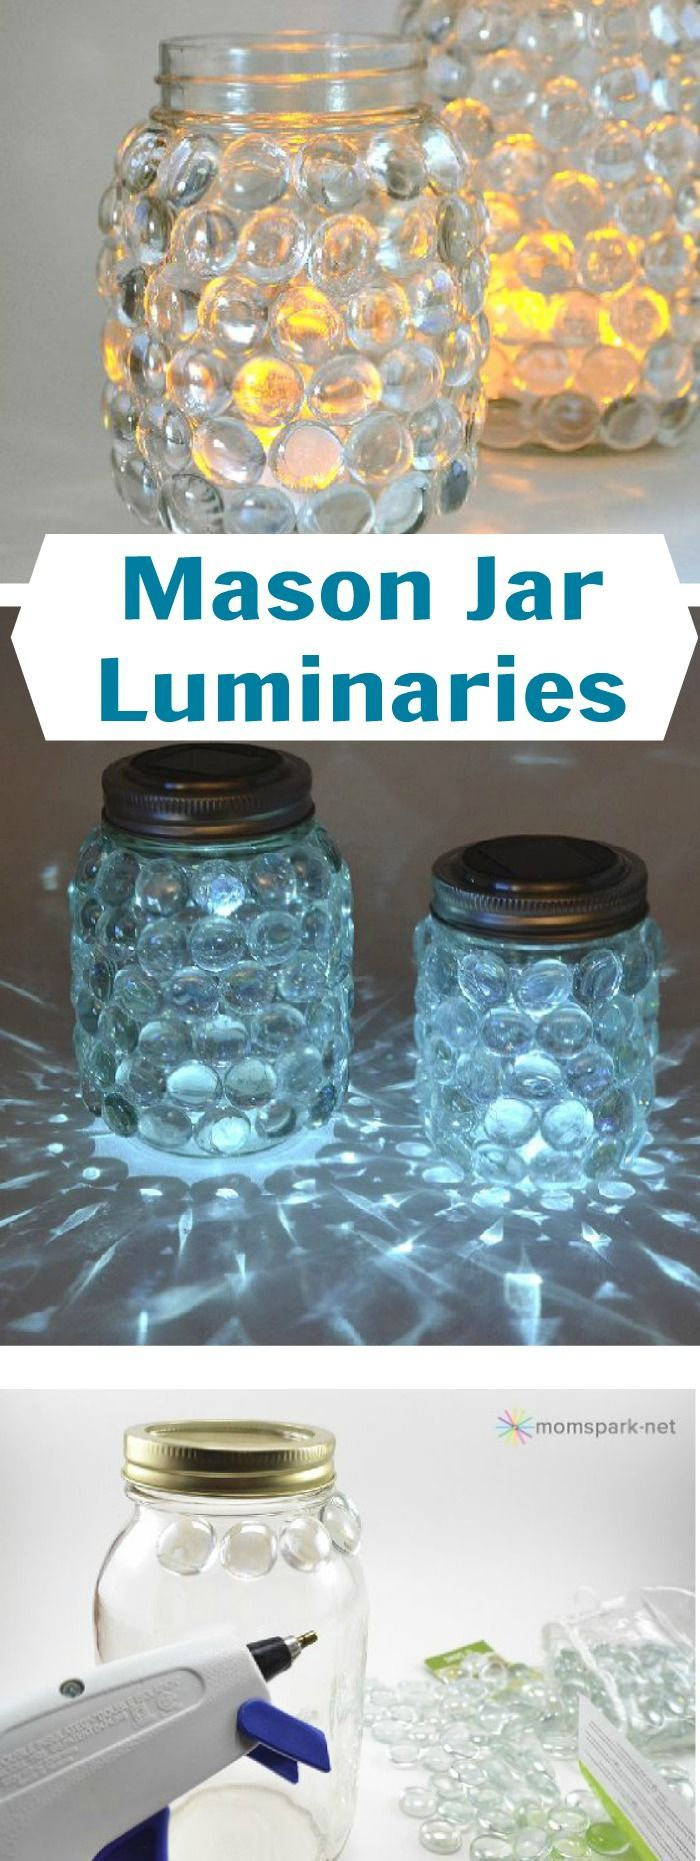 21 Easy Mason Jar Craft Ideas160 best DIY Room Decor images on Pinterest   DIY  Crafts and Home. Diy Room Decor Ideas Pinterest. Home Design Ideas